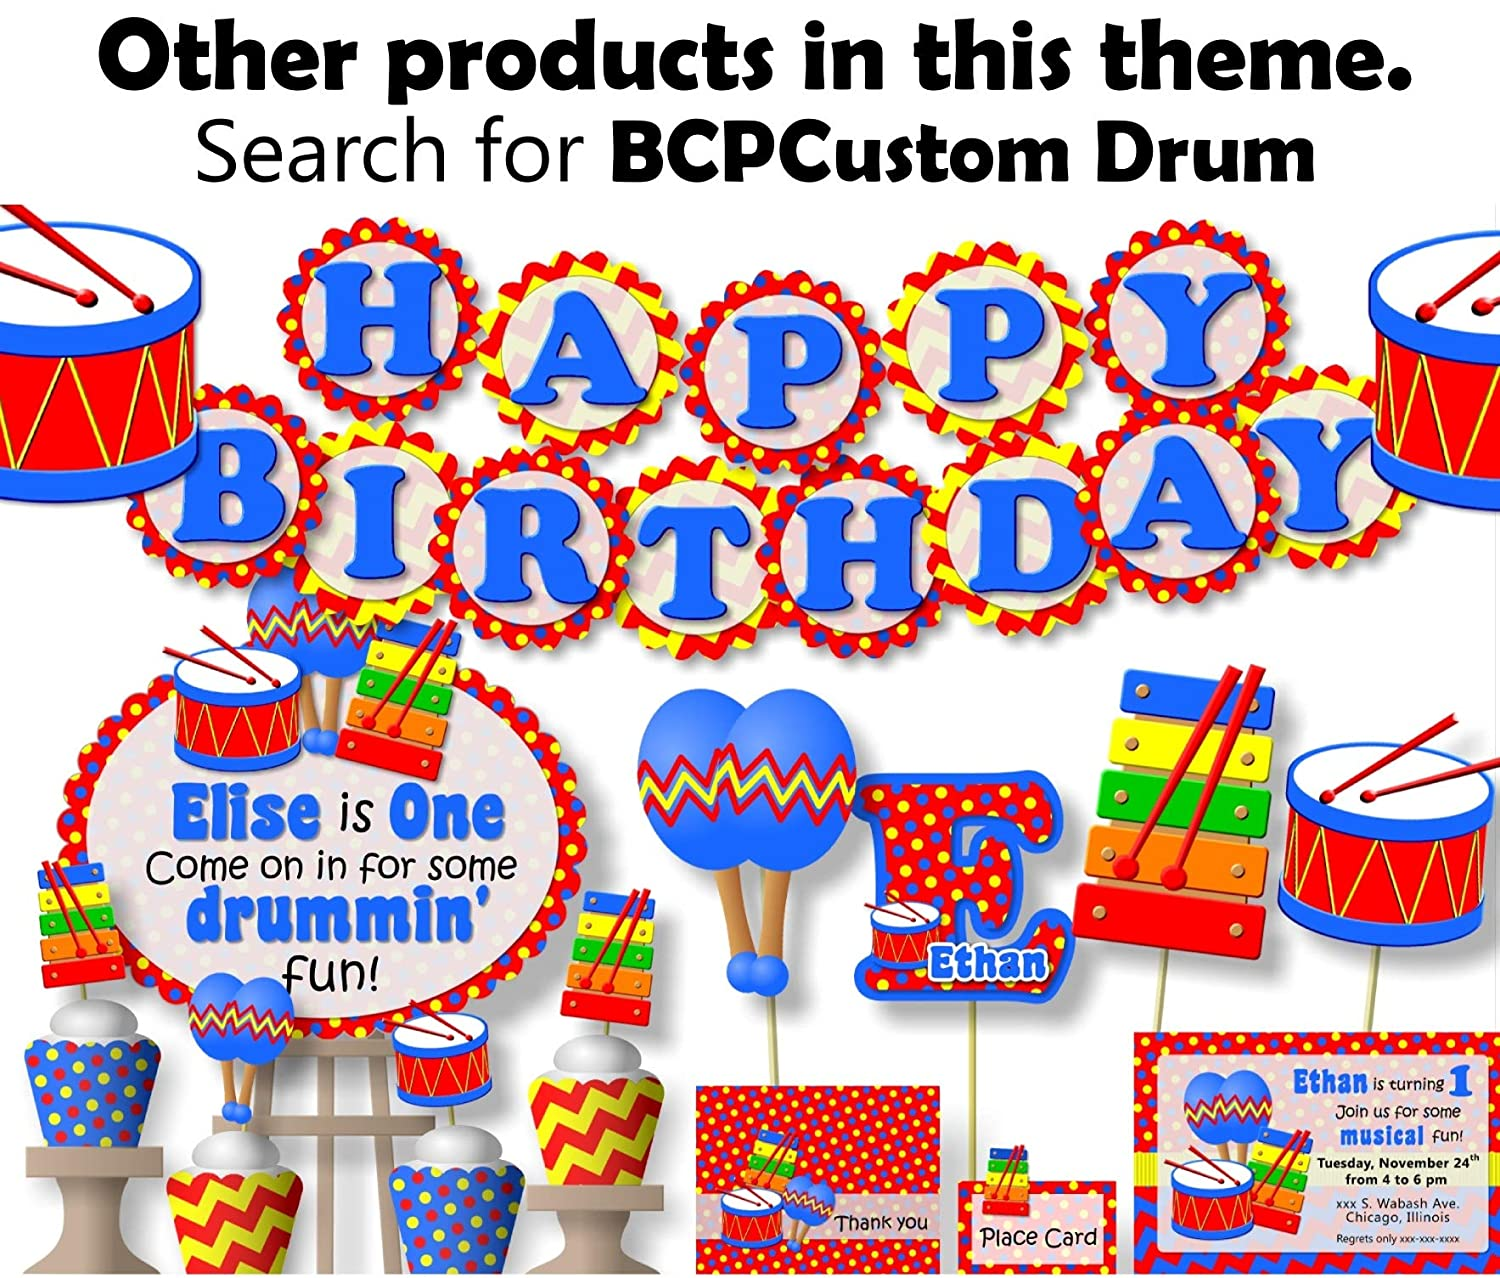 Toy Drum Music Birthday Party Banner for Boy Handmade in USA HAPPY BIRTHDAY Garland Party Decoration